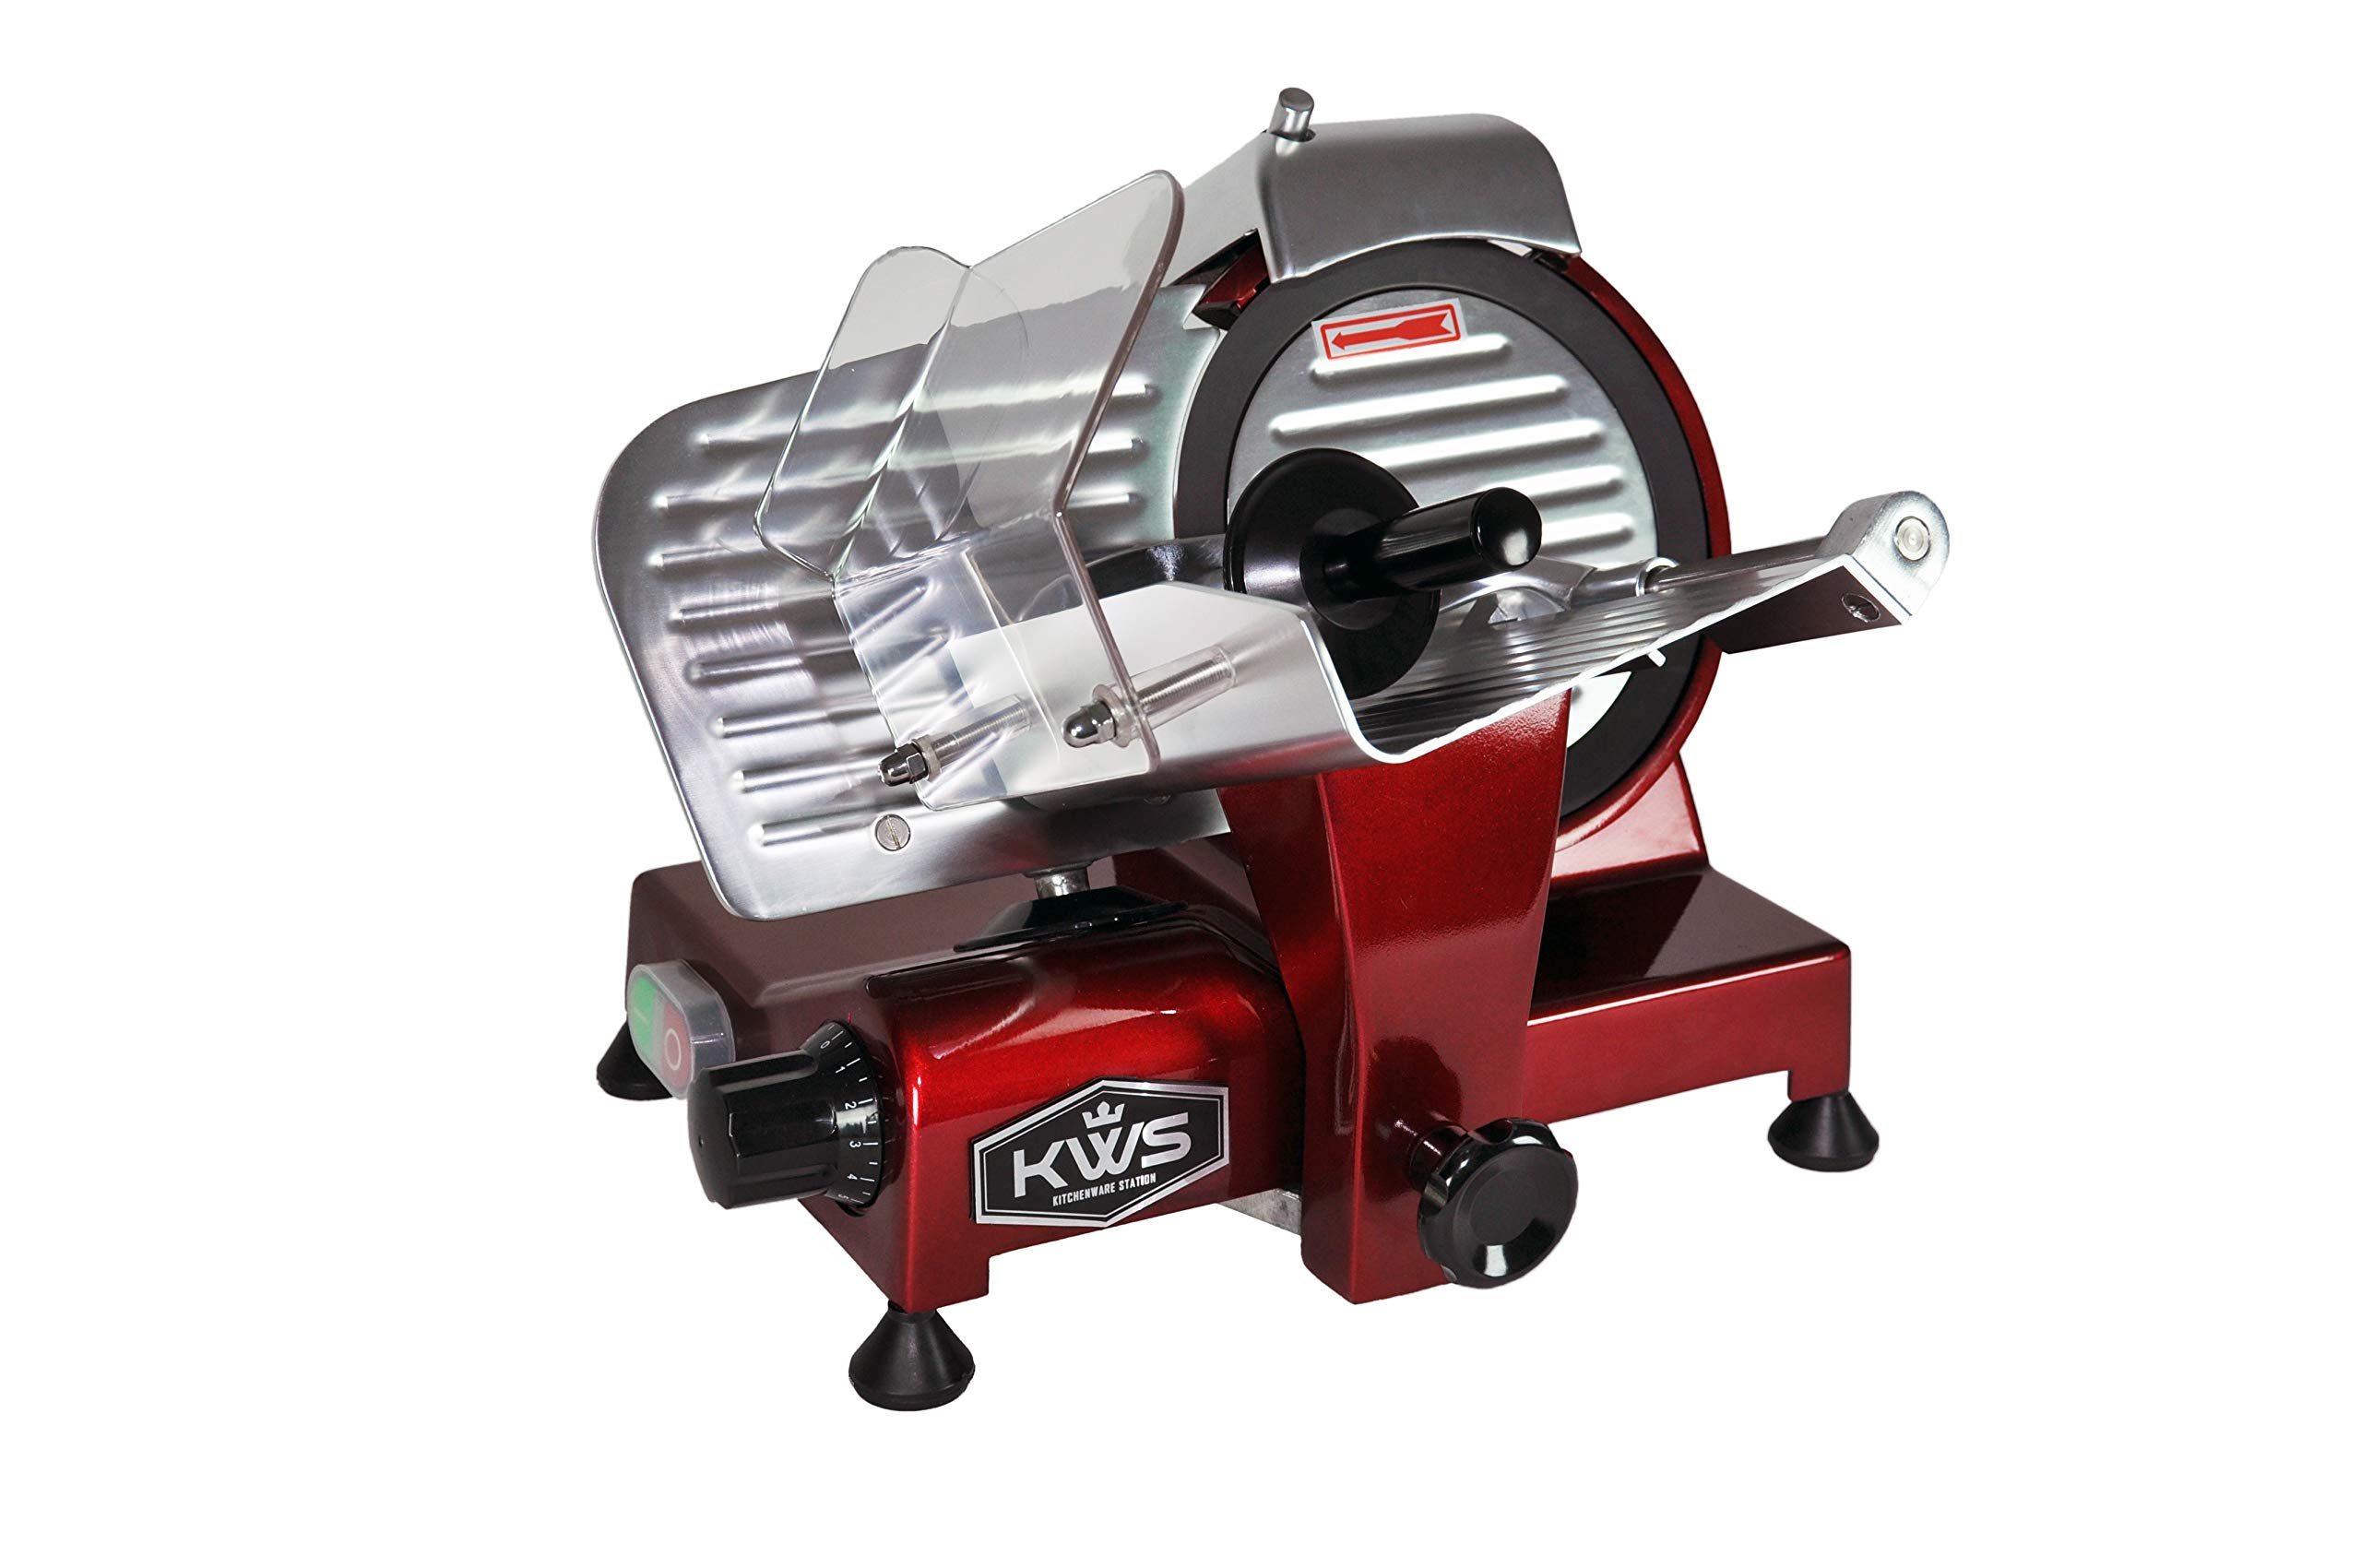 KWS MS-6RT Premium 200w Electric Meat Slicer 6-Inch in Red Teflon Blade, Frozen Meat Deli Meat Cheese Food Slicer Low Noises Commercial and Home Use by KitchenWare Station